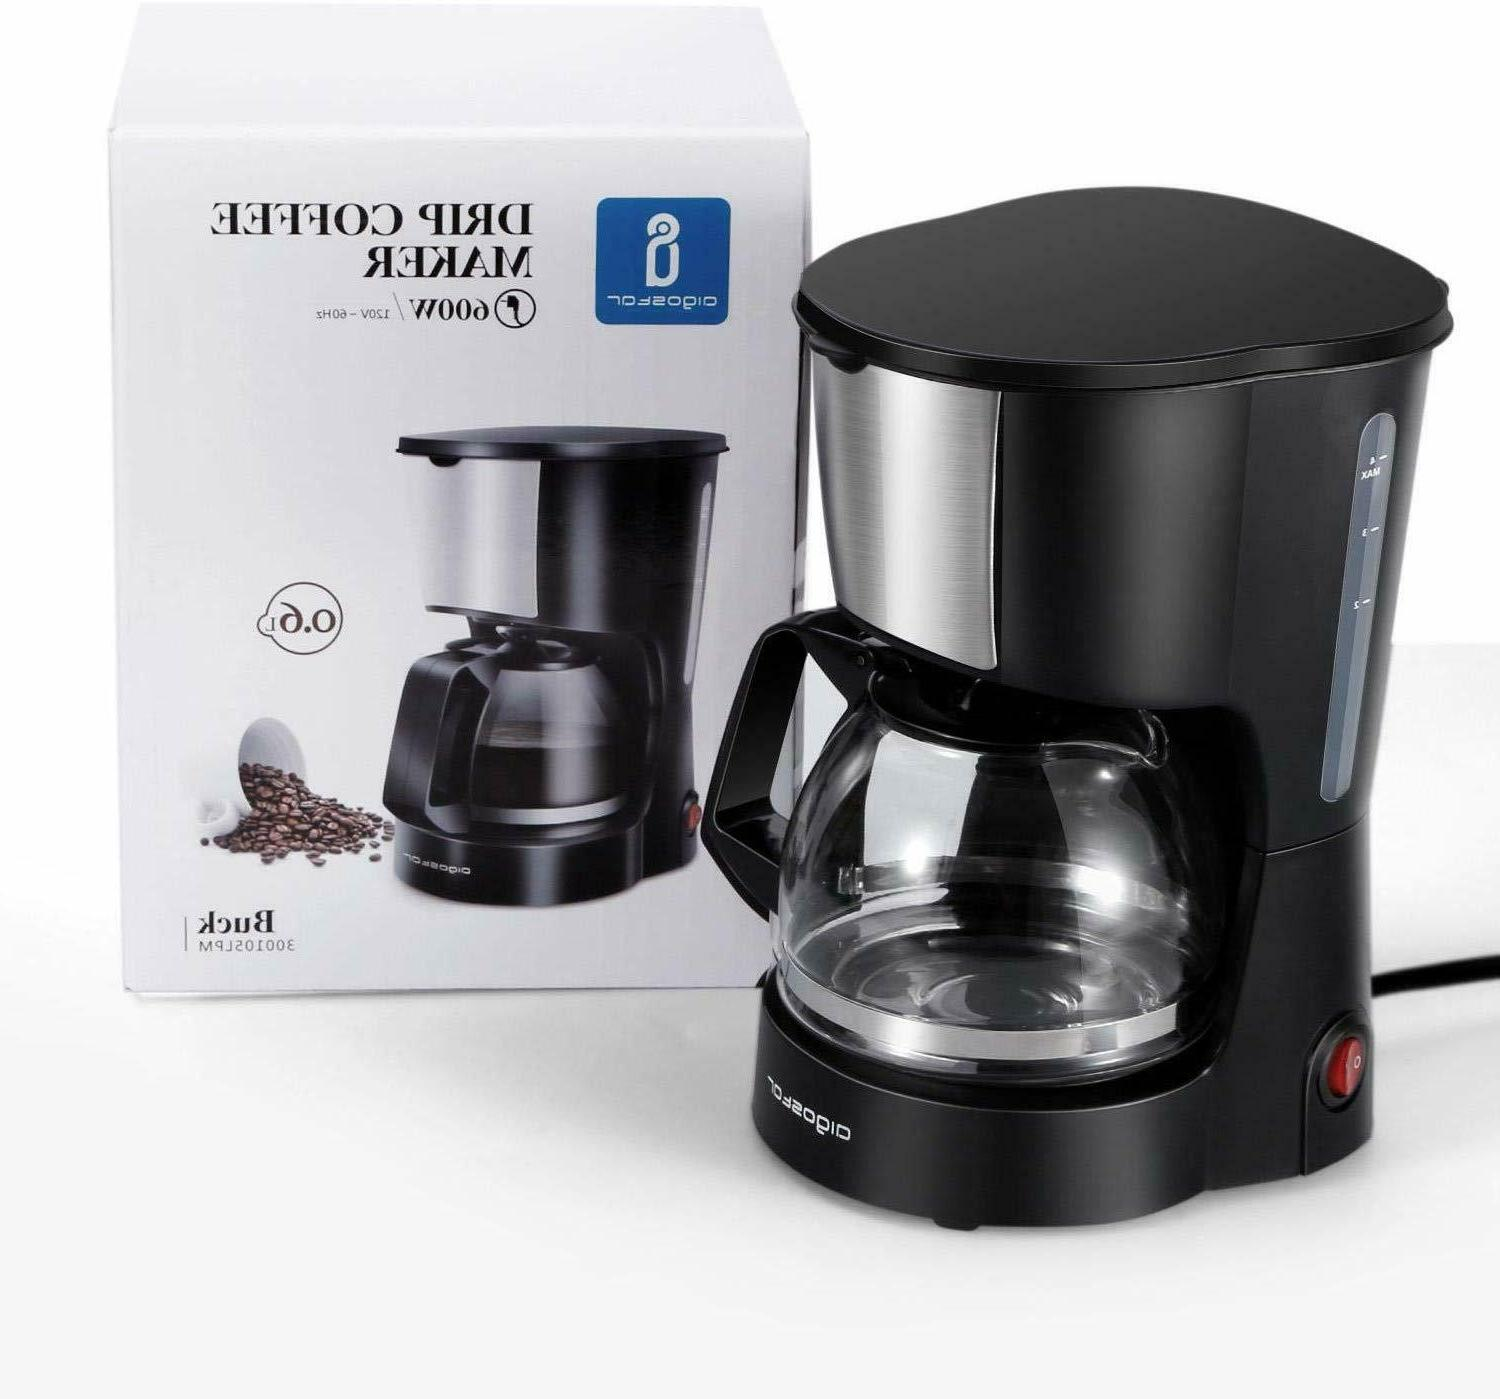 4 Coffee Maker with Coffee and Carafe for Travel